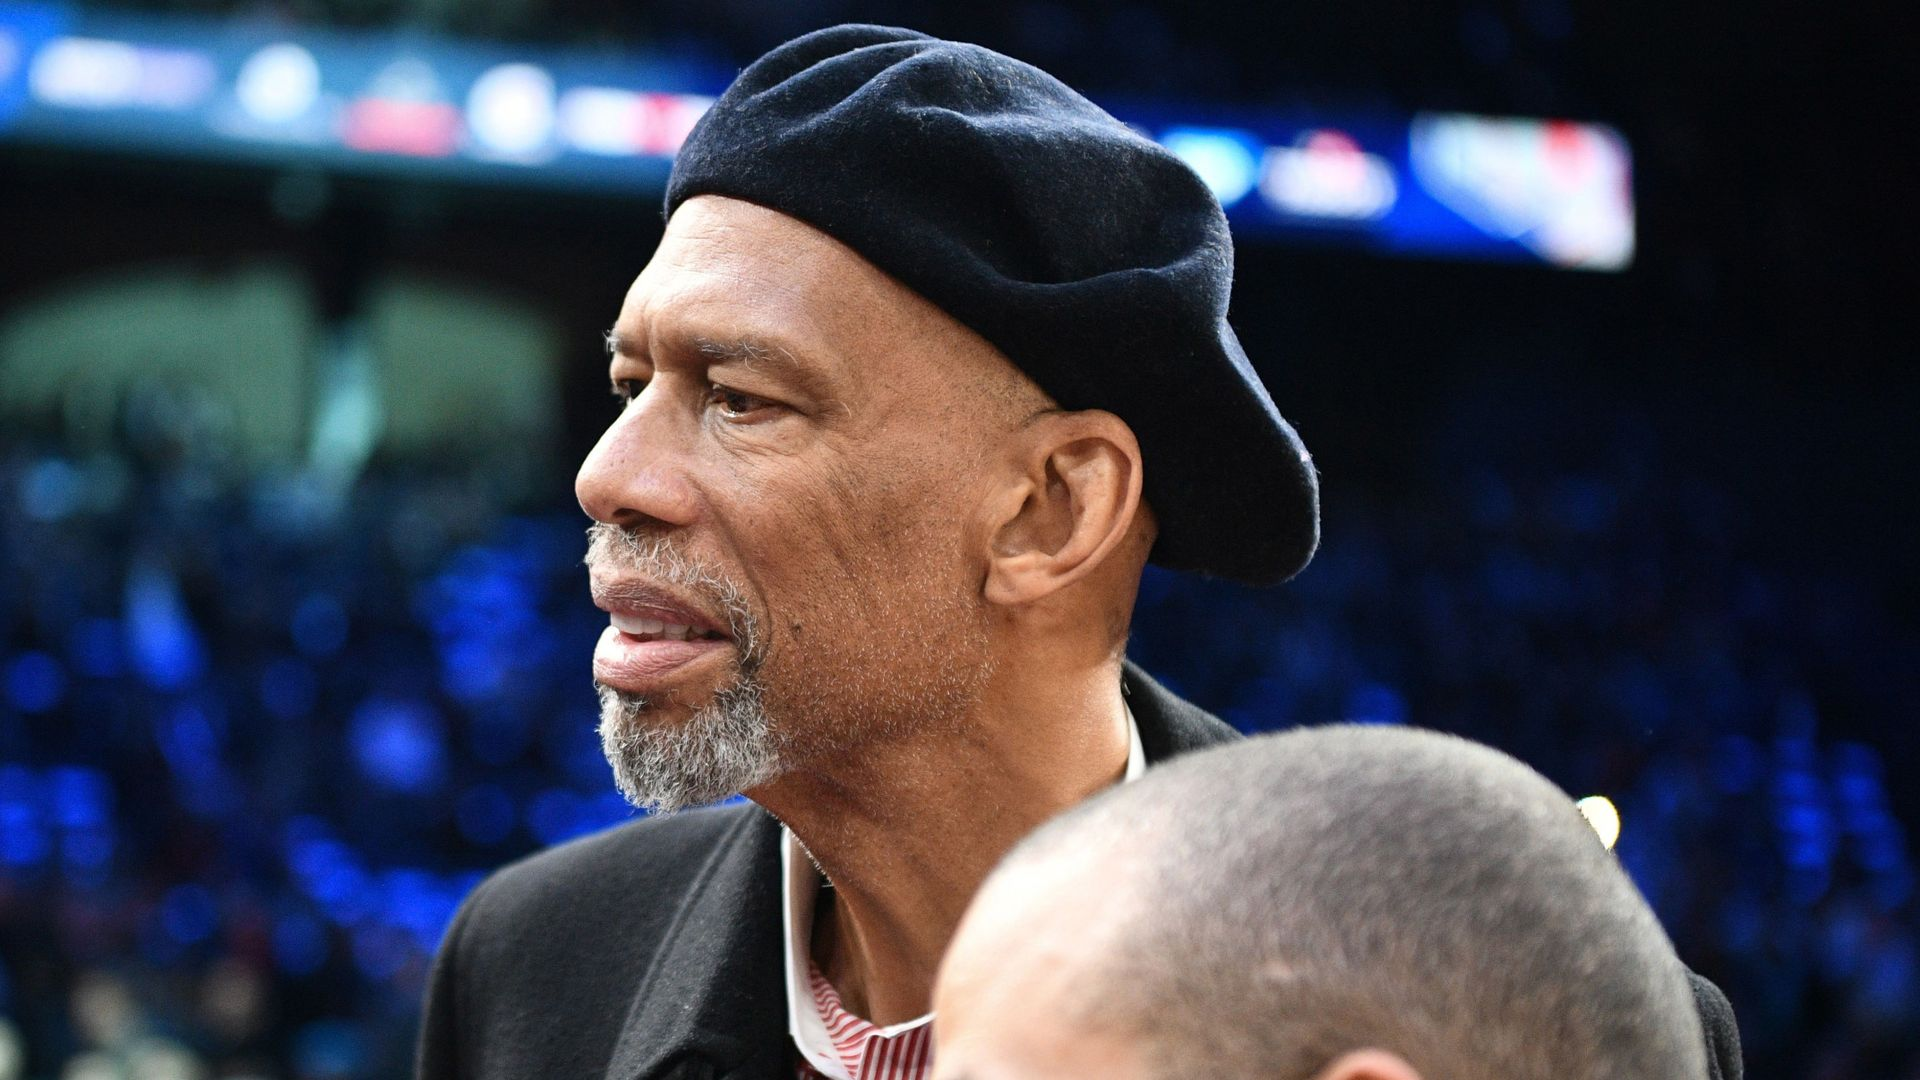 Kareem: Important for athletes to speak out